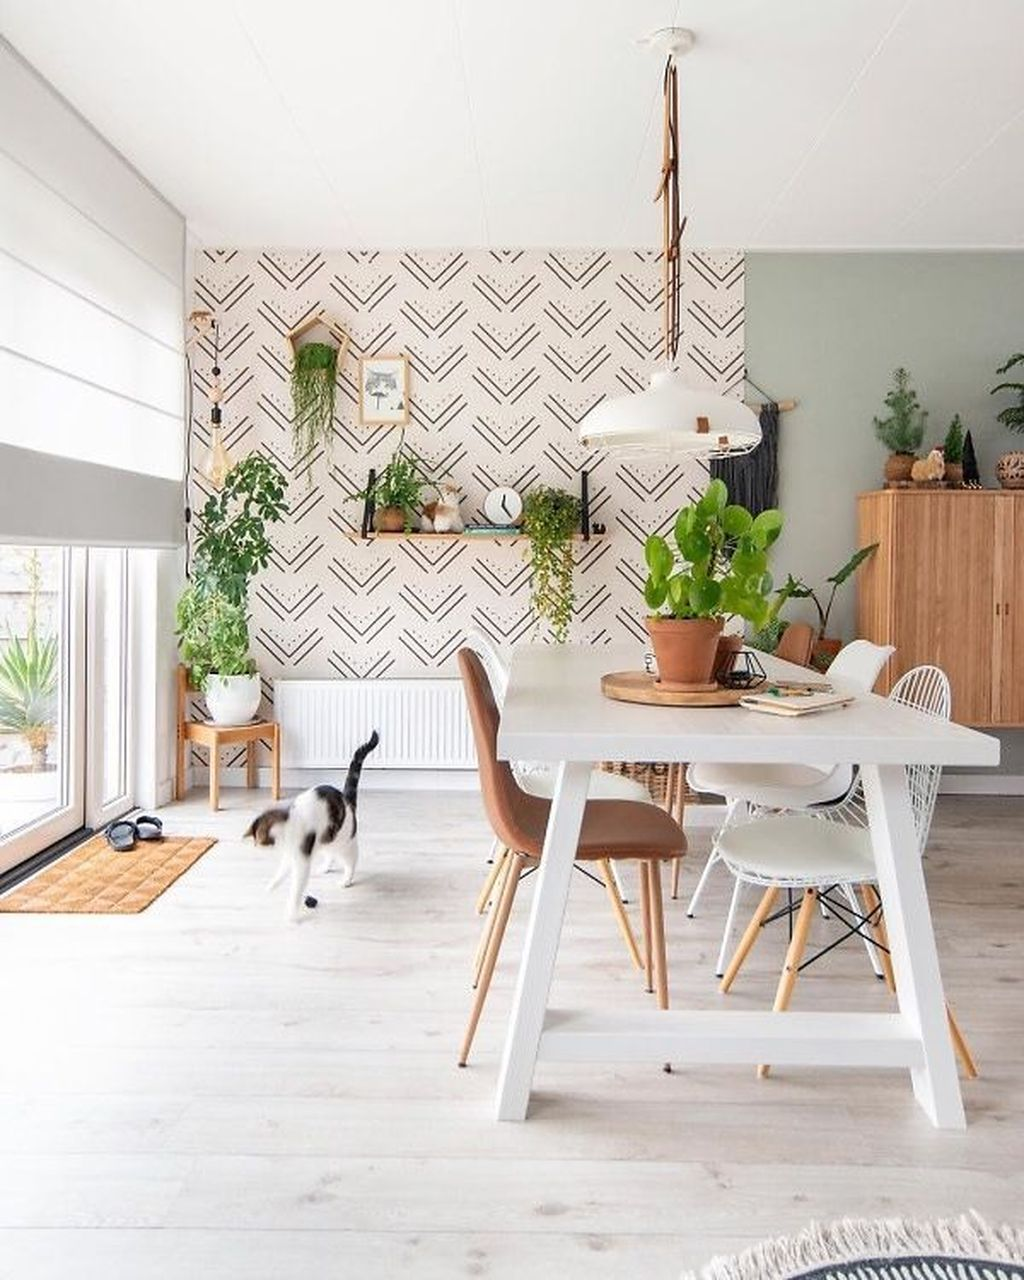 Best Summer Interior Design Ideas To Beautify Your Home 20